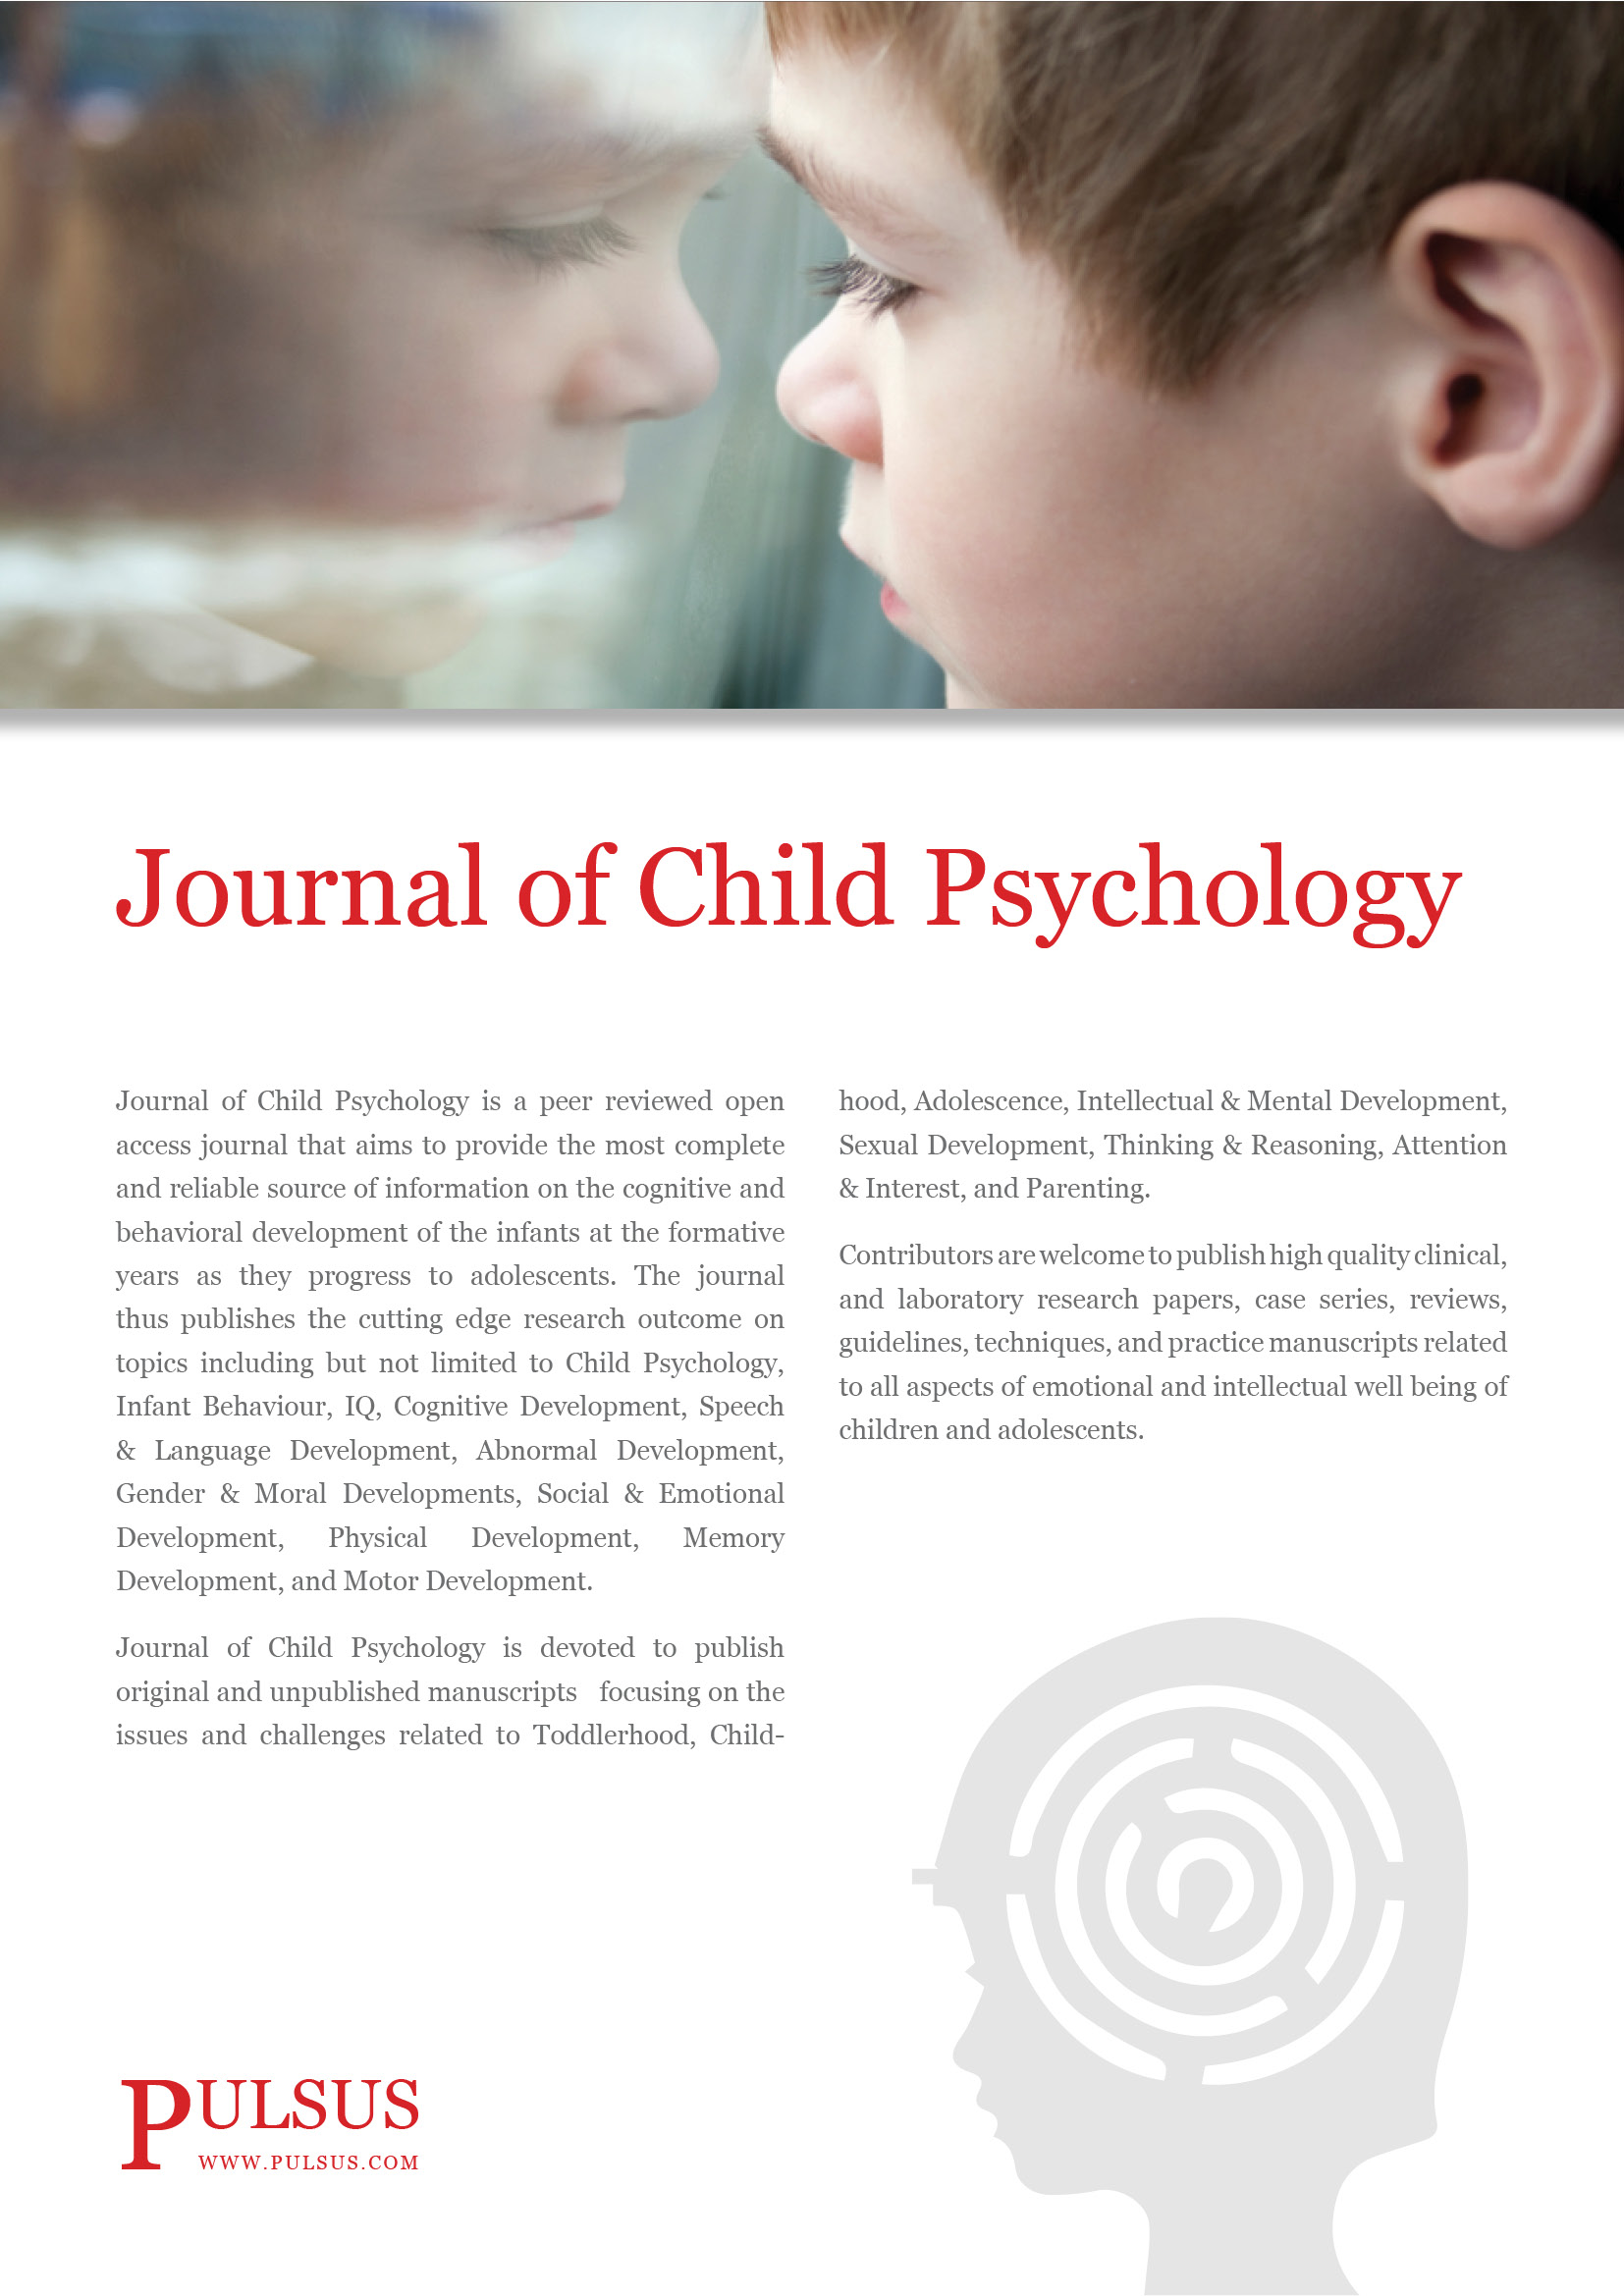 001 Journal Of Child Psychology Flyer Research Paper Articles On Wondrous Development Full